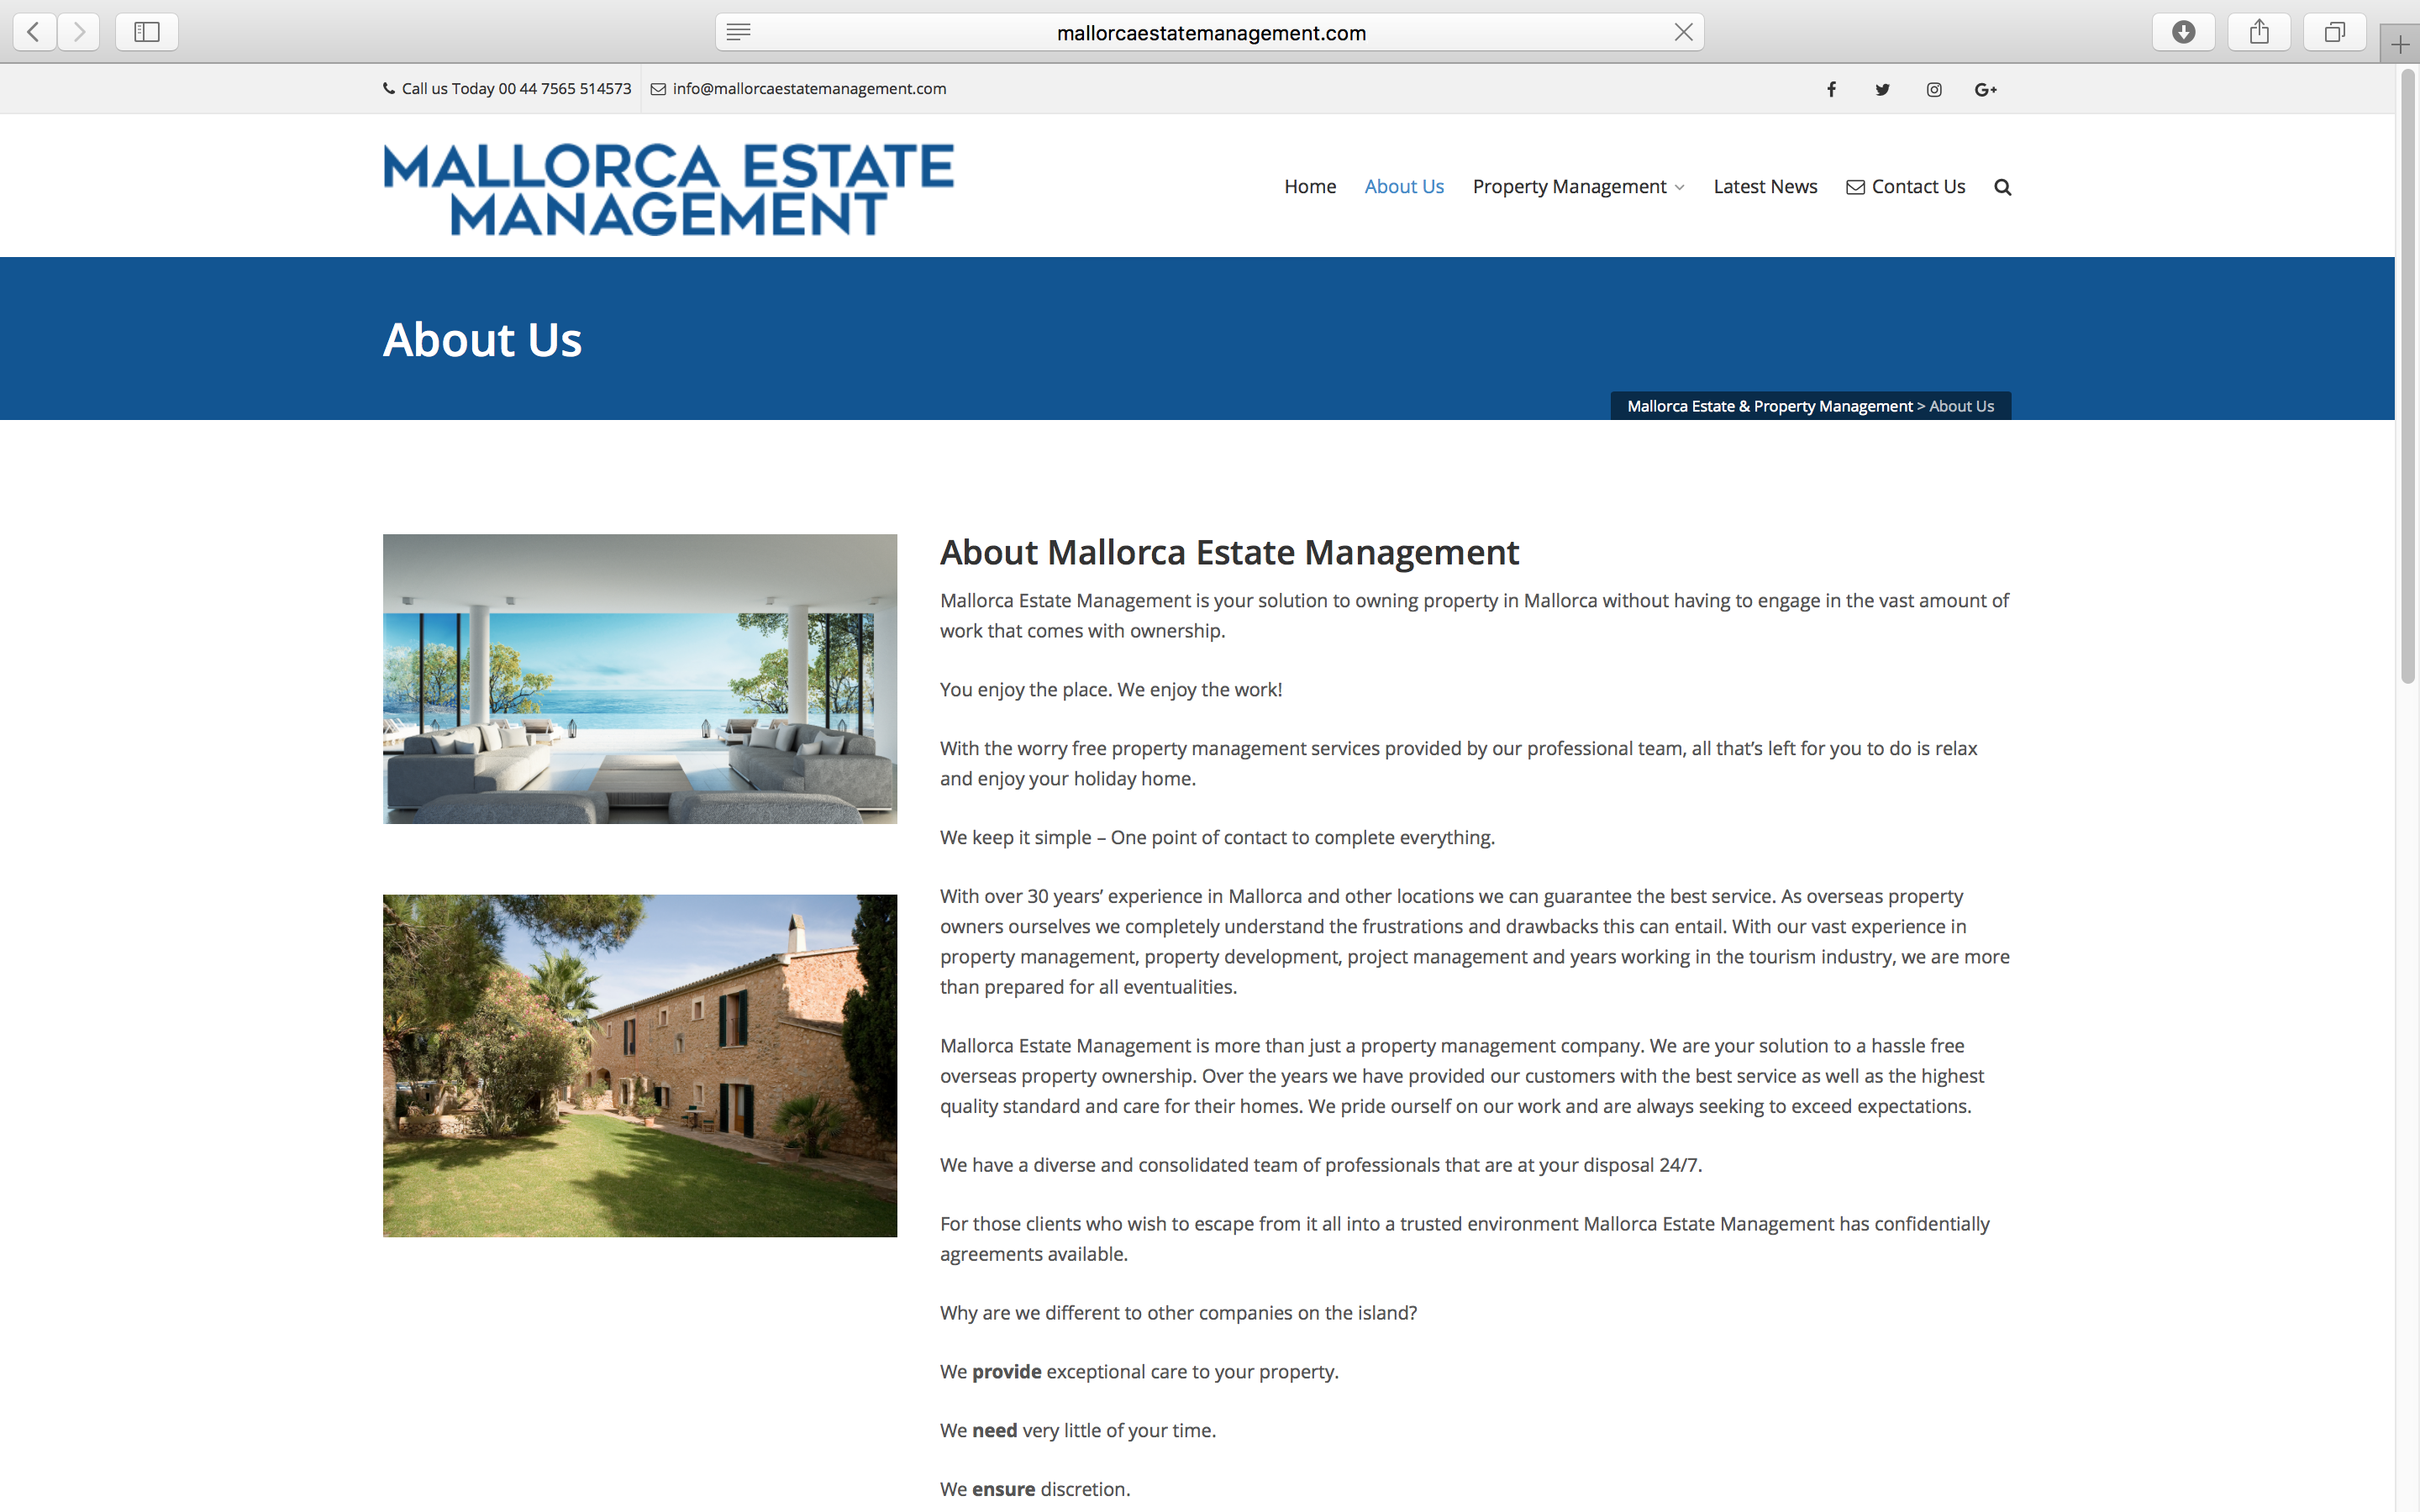 Mallorca Estate Management About